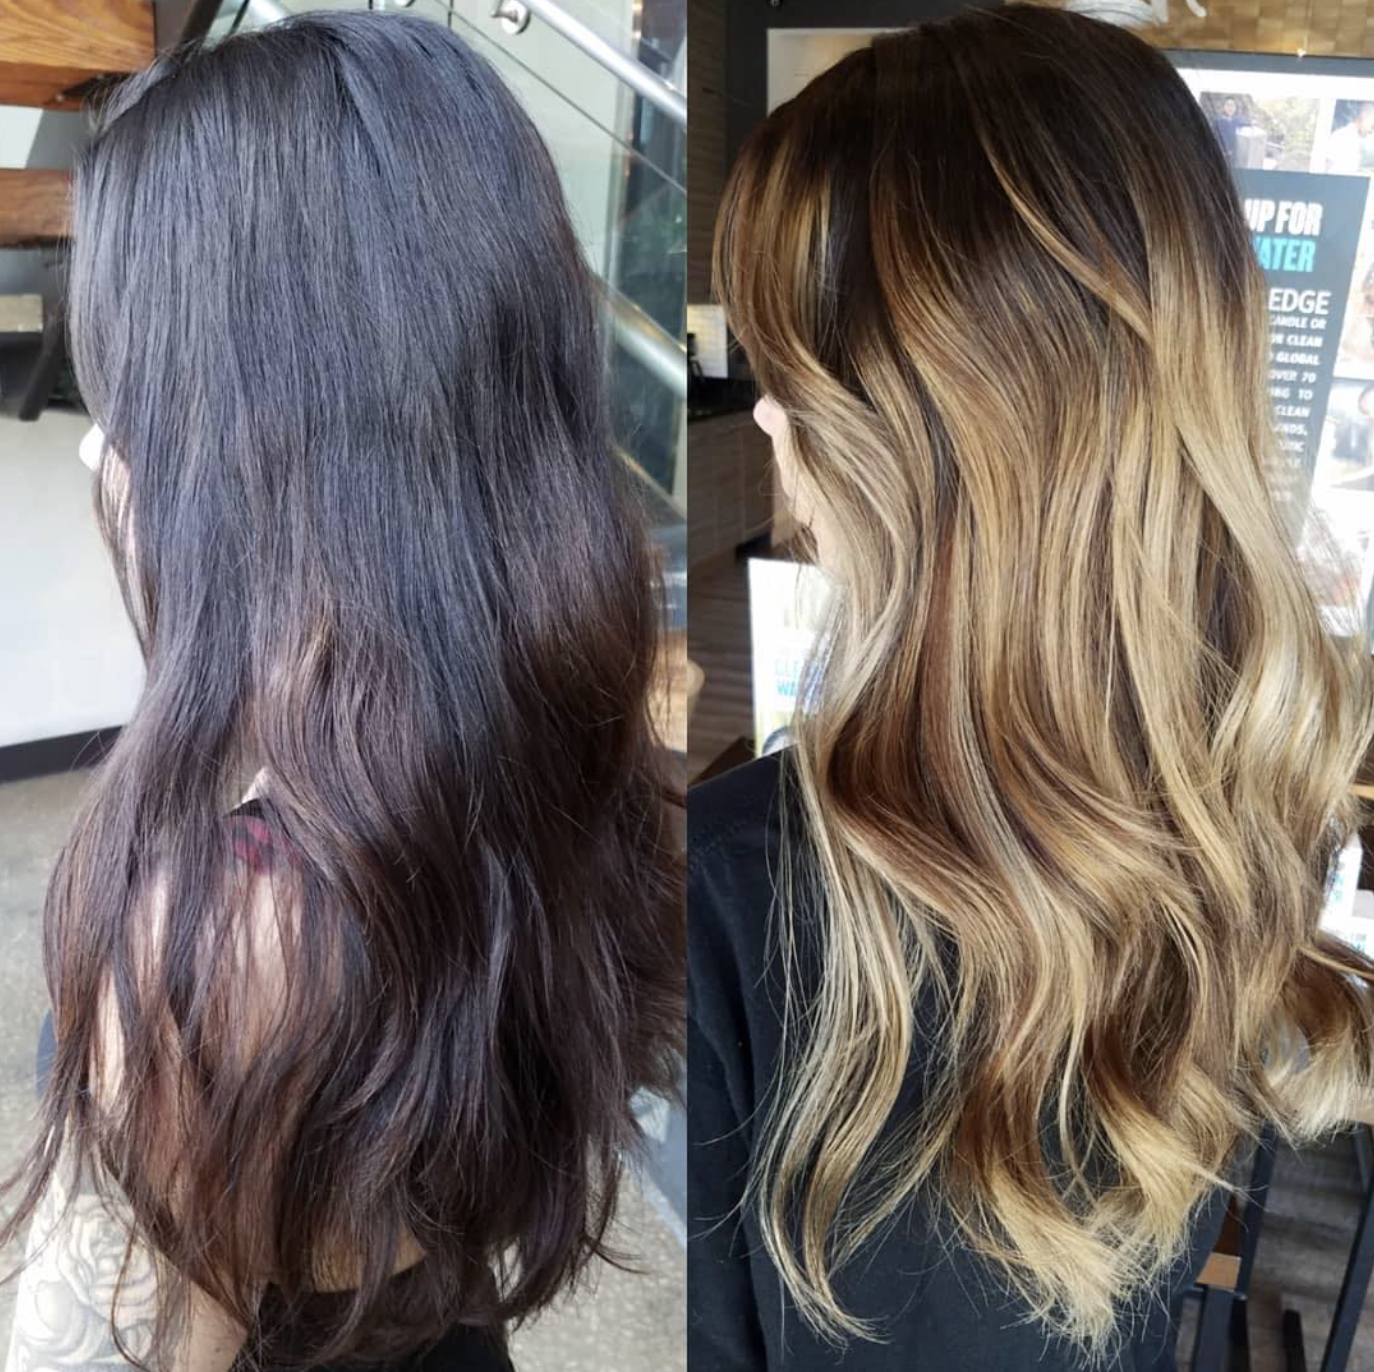 Layers Of Previous Hair Color Including Black Box Dye To A Soft Balayage By Amanda Balayage Hair Hair Hair Color Balayage